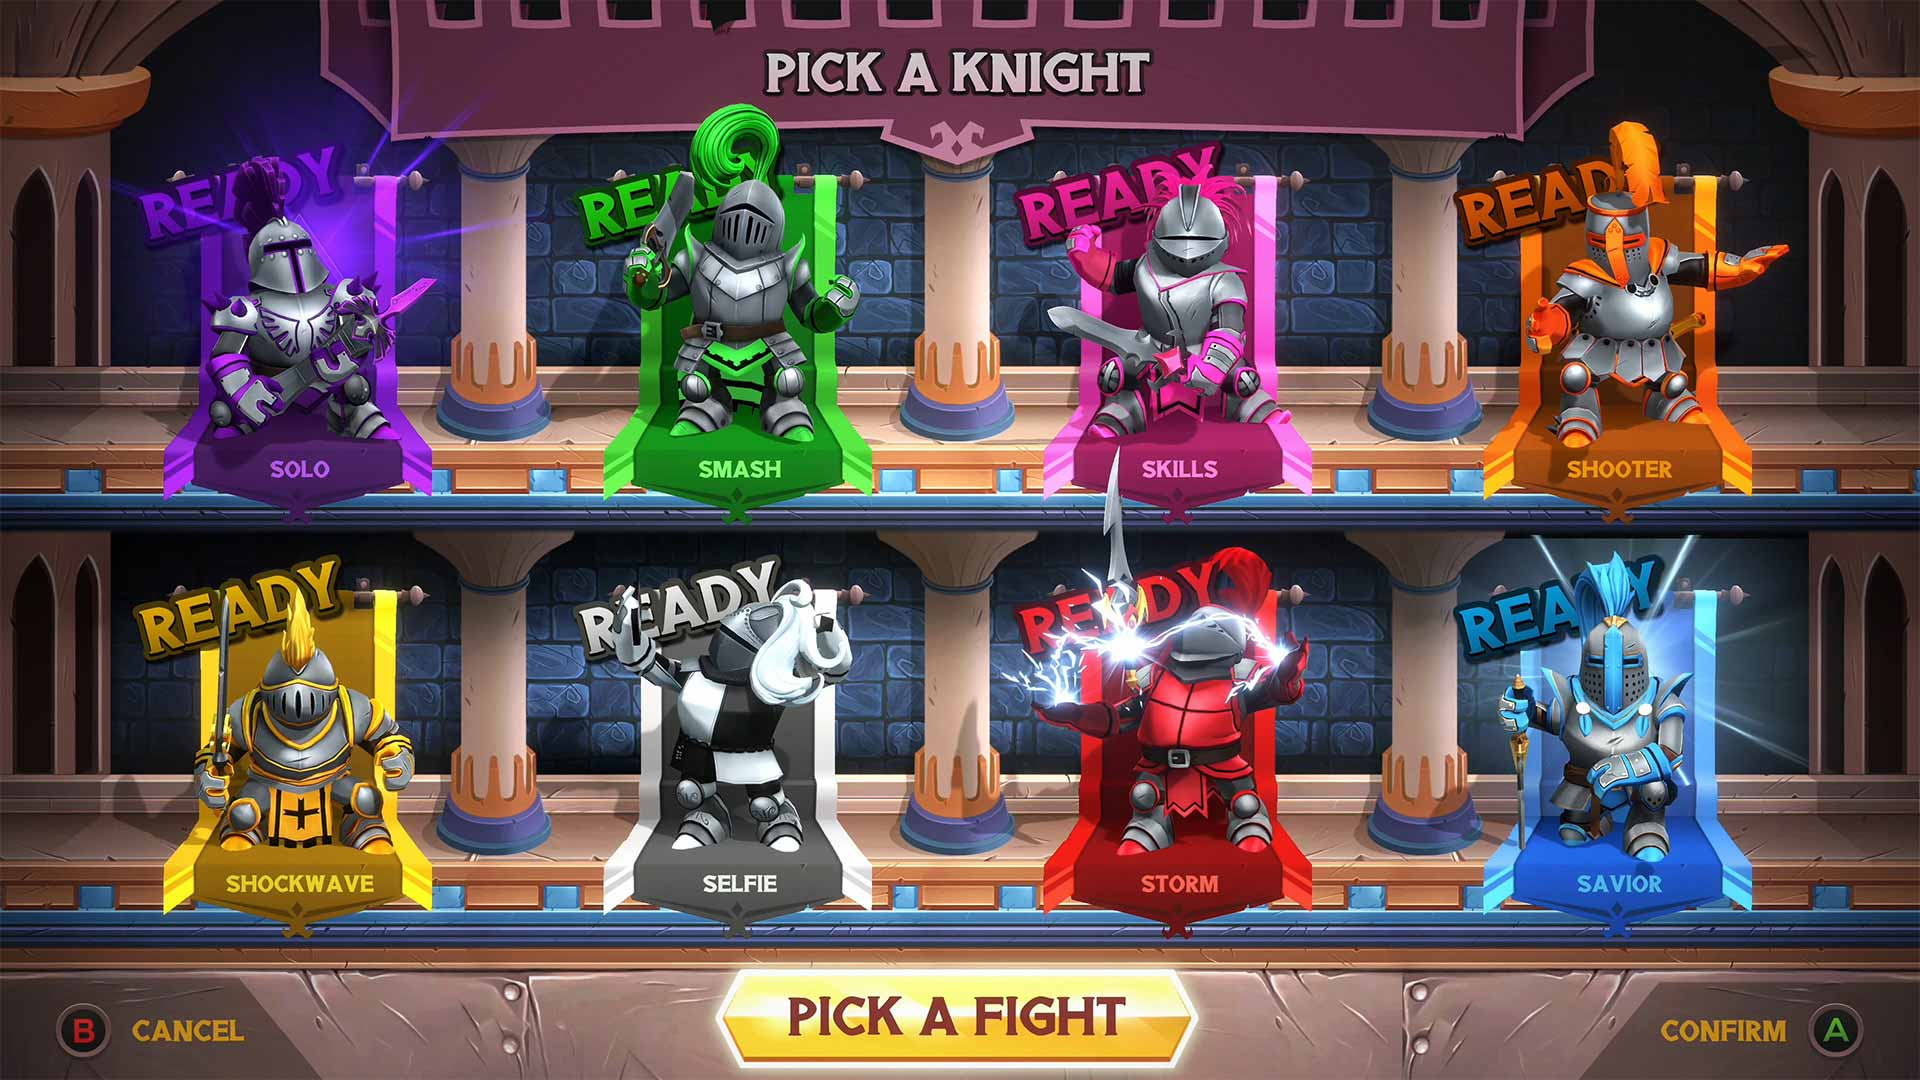 Knight Squad knight selection